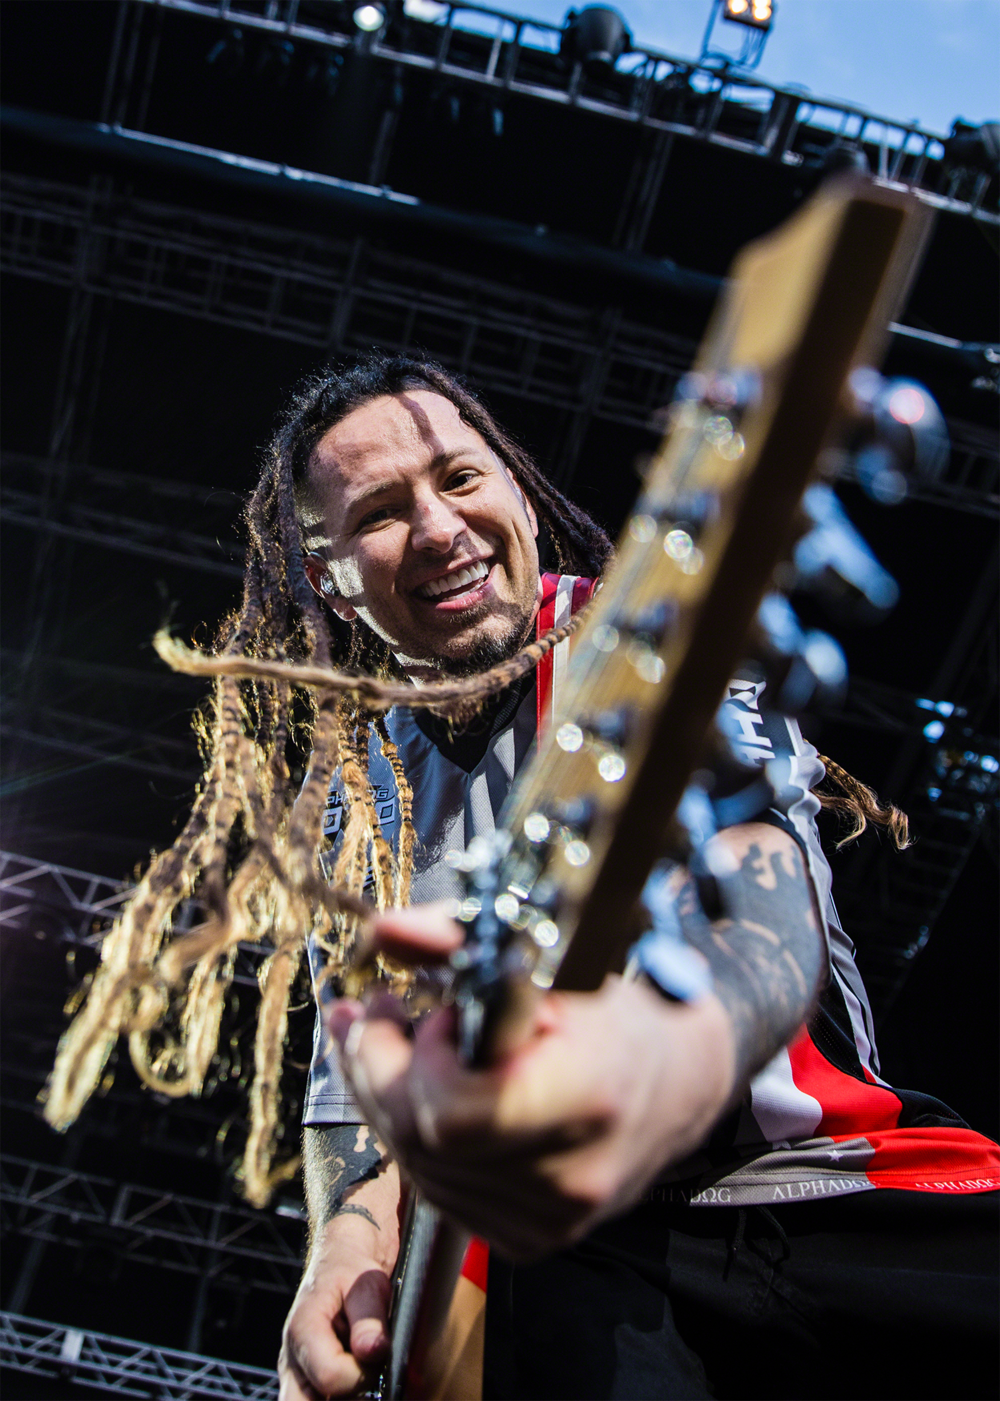 Zoltan Bathory of Five Finger Death Punch